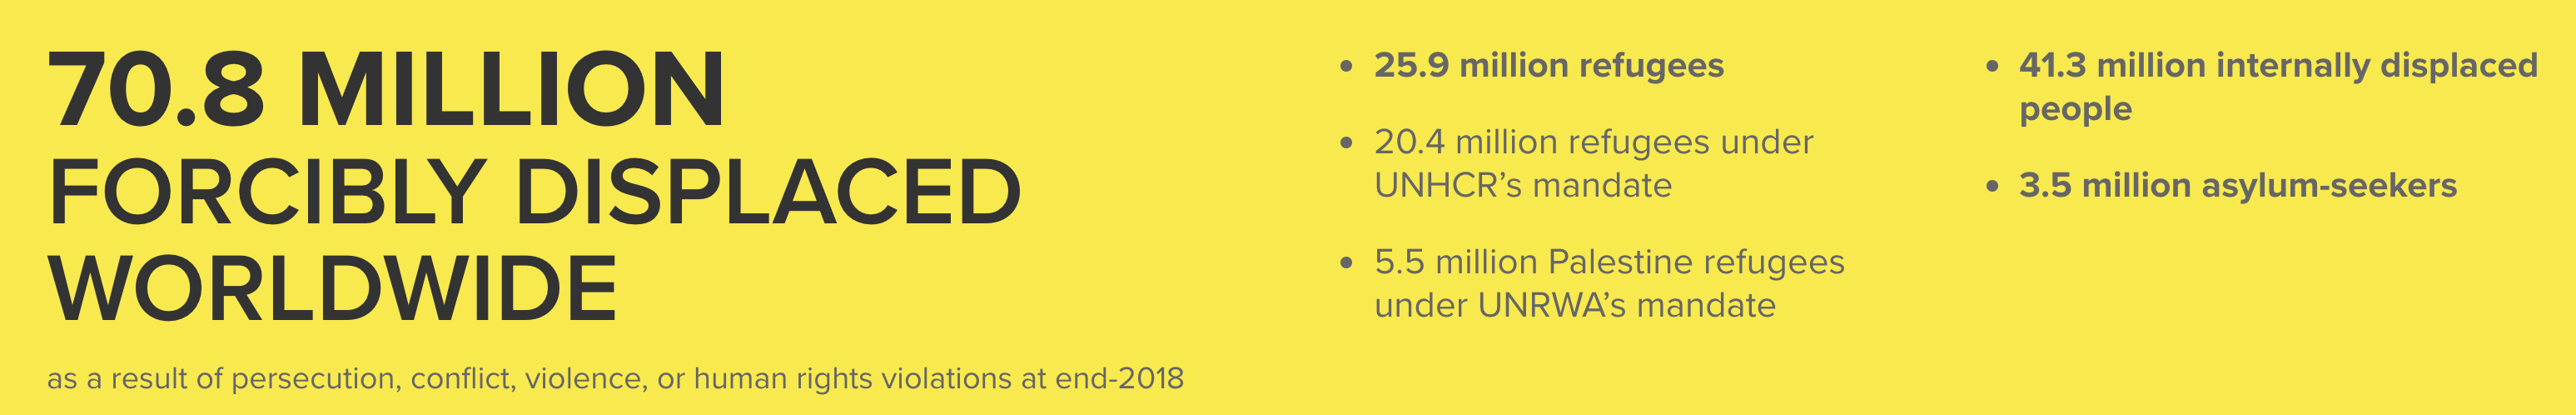 Displaced people in 2019, UNHCR